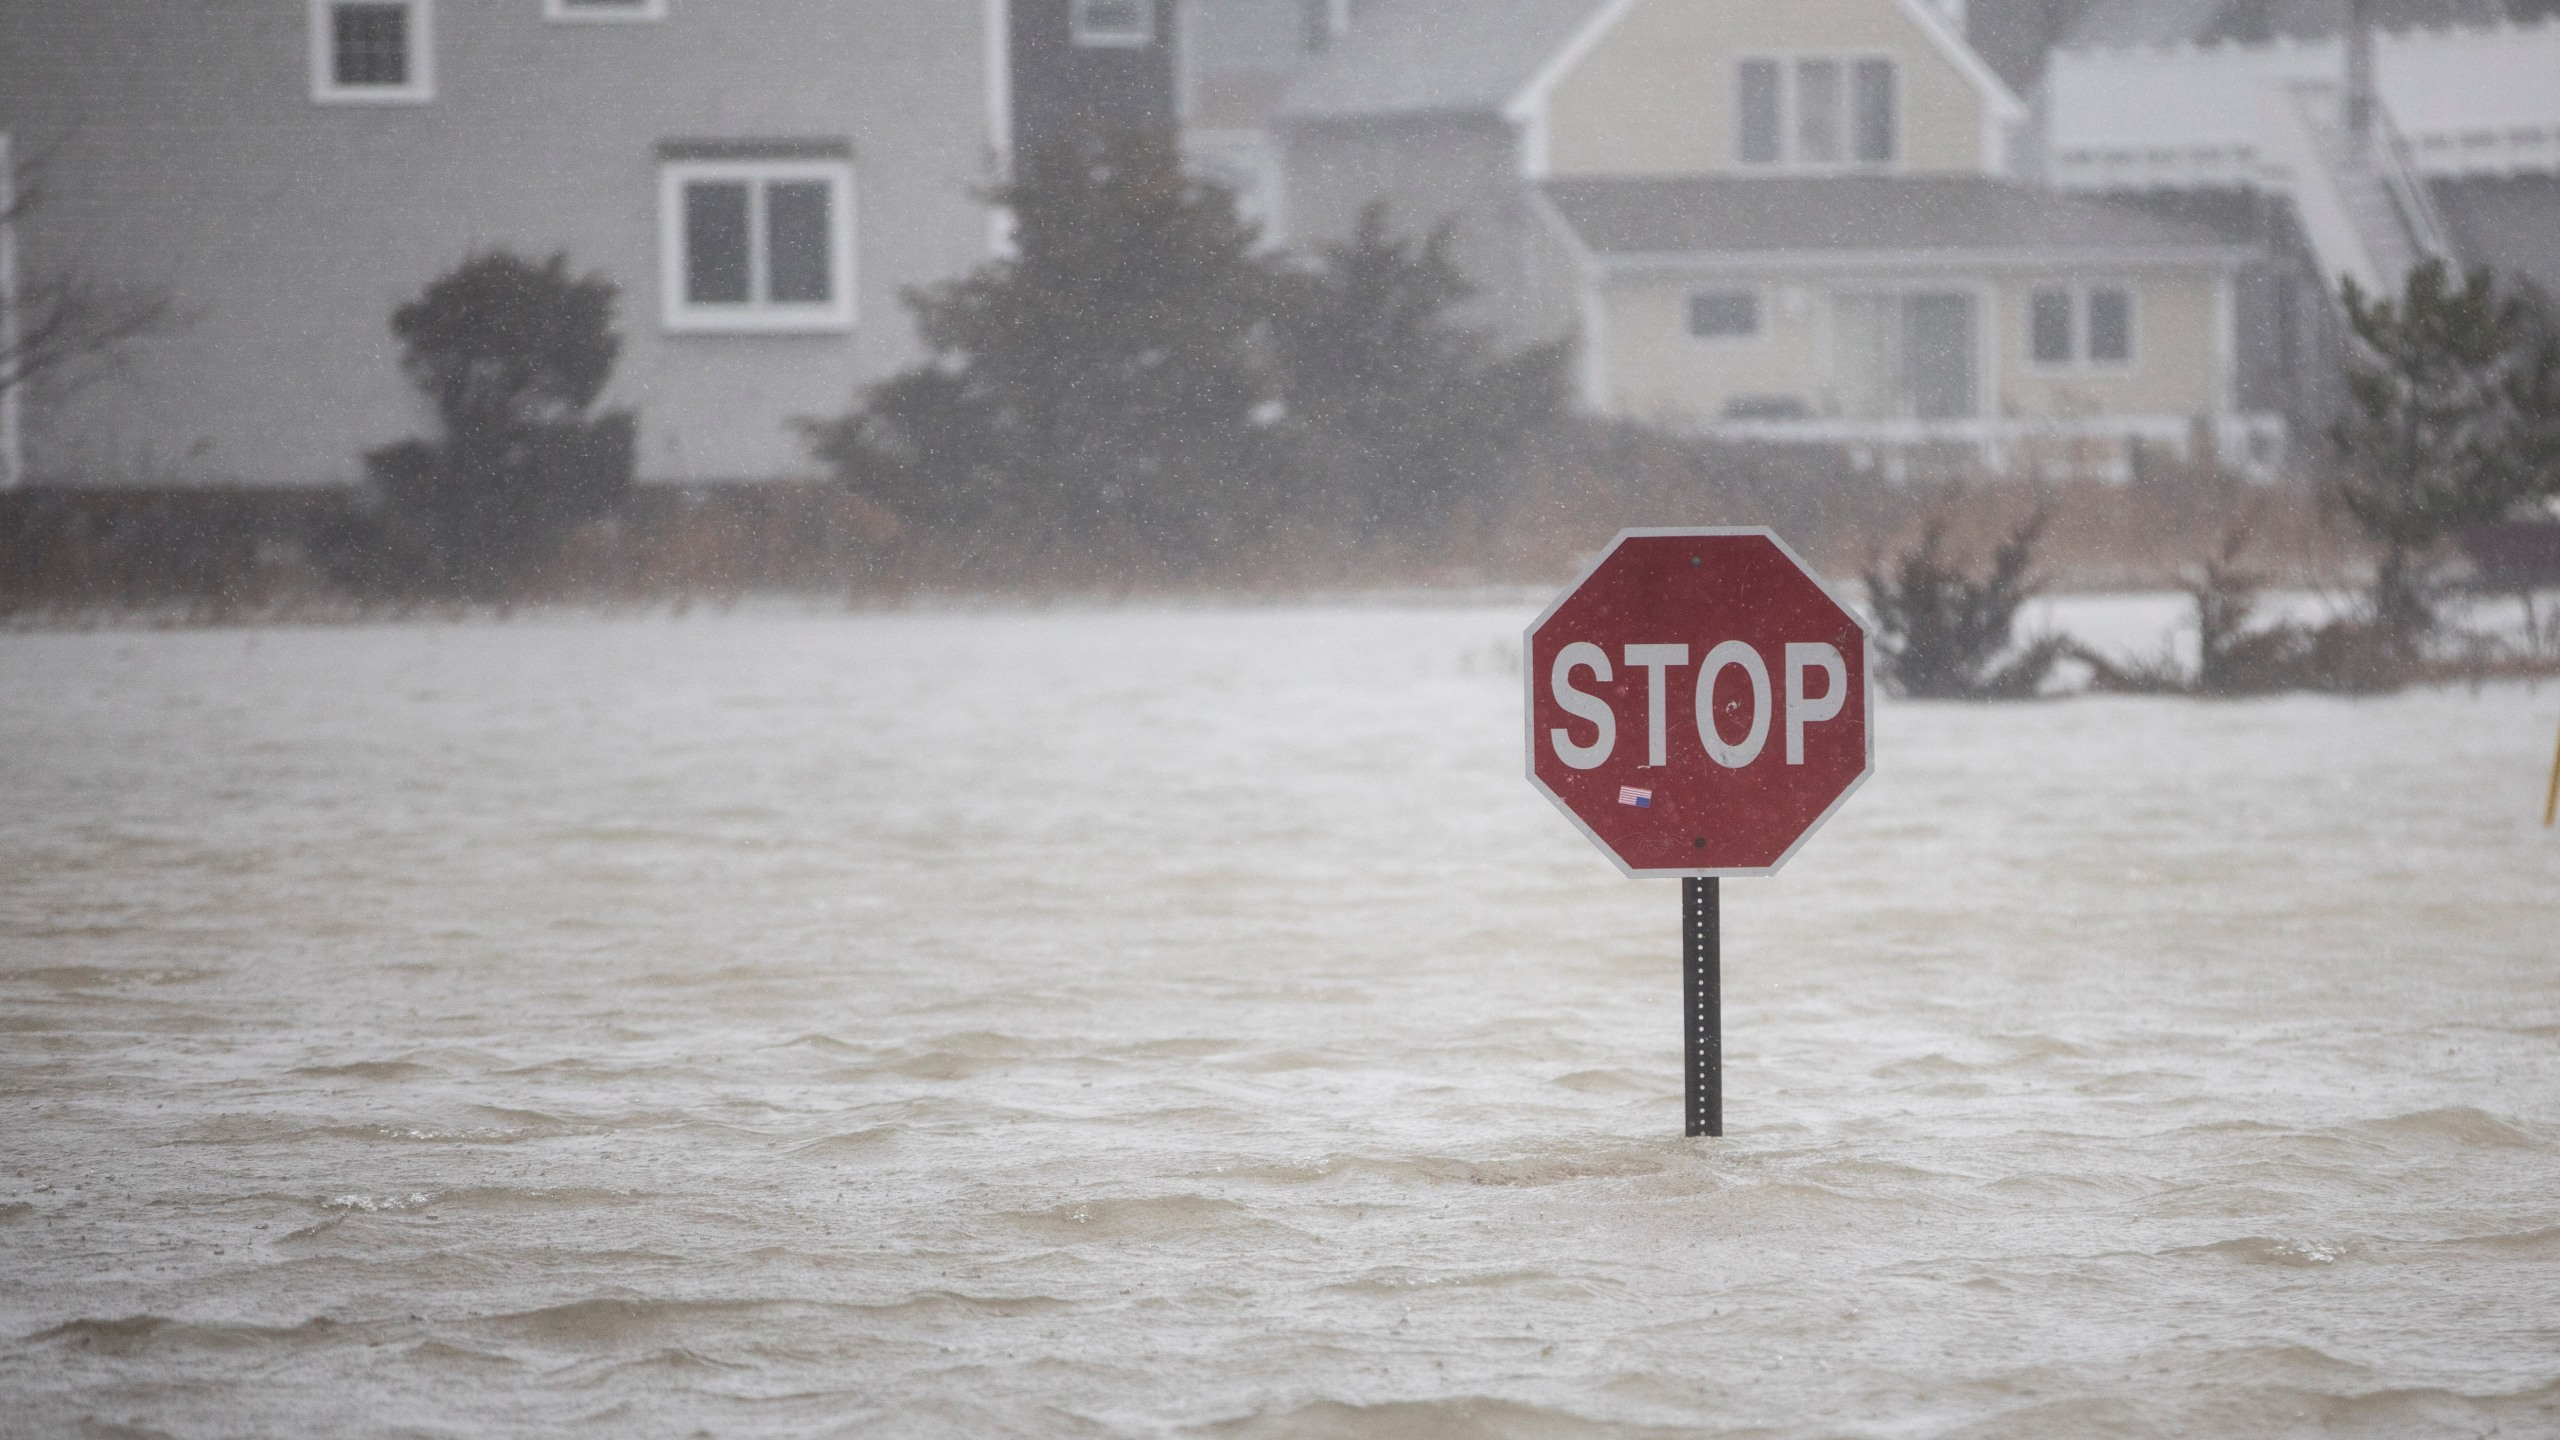 A flooded out road with a stop sign as a large coastal storm bears down on the region on March 2, 2018 in Scituate, Massachusetts. (Credit: Scott Eisen/Getty Images)